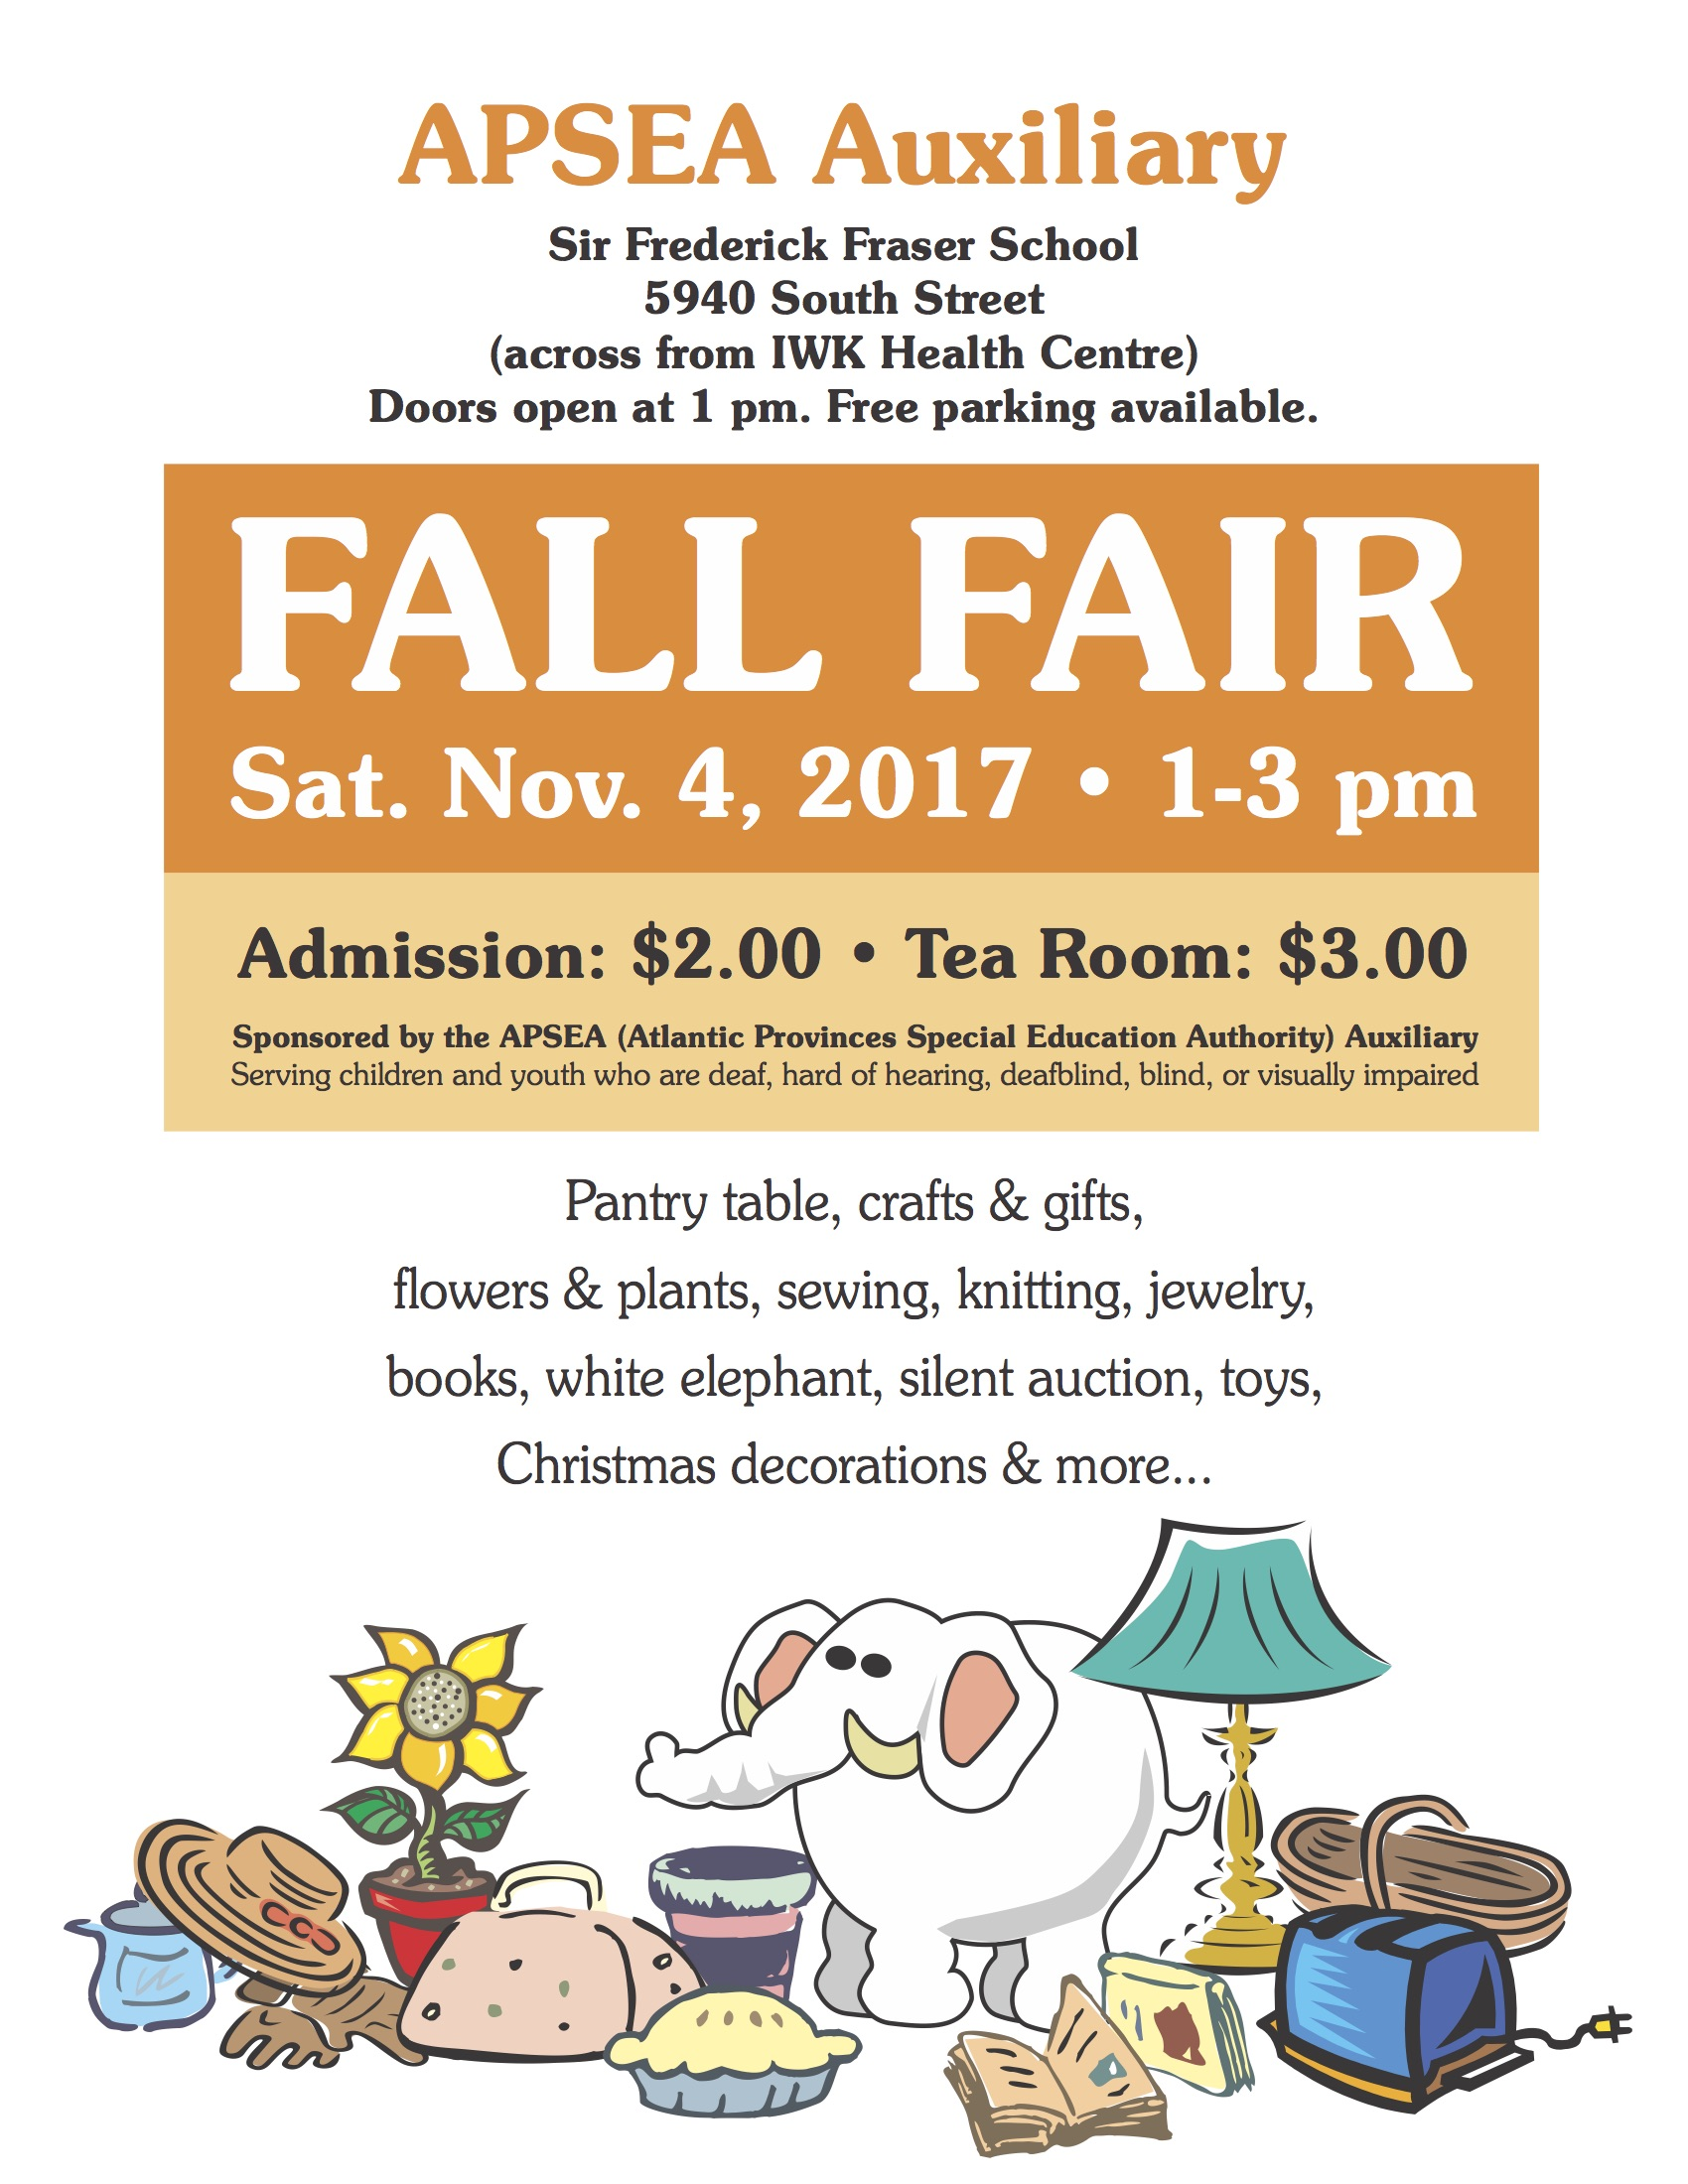 APSEA Auxiliary Sir Frederick Fraser School 5940 South Street (across from IWK Health Centre) Doors open at 1 pm. Free parking available. FALL FAIR Sat. Nov. 4, 2017 • 1-3 pm Admission: $2.00 • Tea Room: $3.00 Sponsored by the APSEA (Atlantic Provinces Special Education Authority) Auxiliary Serving children and youth who are deaf, hard of hearing, deafblind, blind, or visually impaired Pantry table, crafts & gifts, flowers & plants, sewing, knitting, jewelry, books, white elephant, silent auction, toys, Christmas decorations & more...